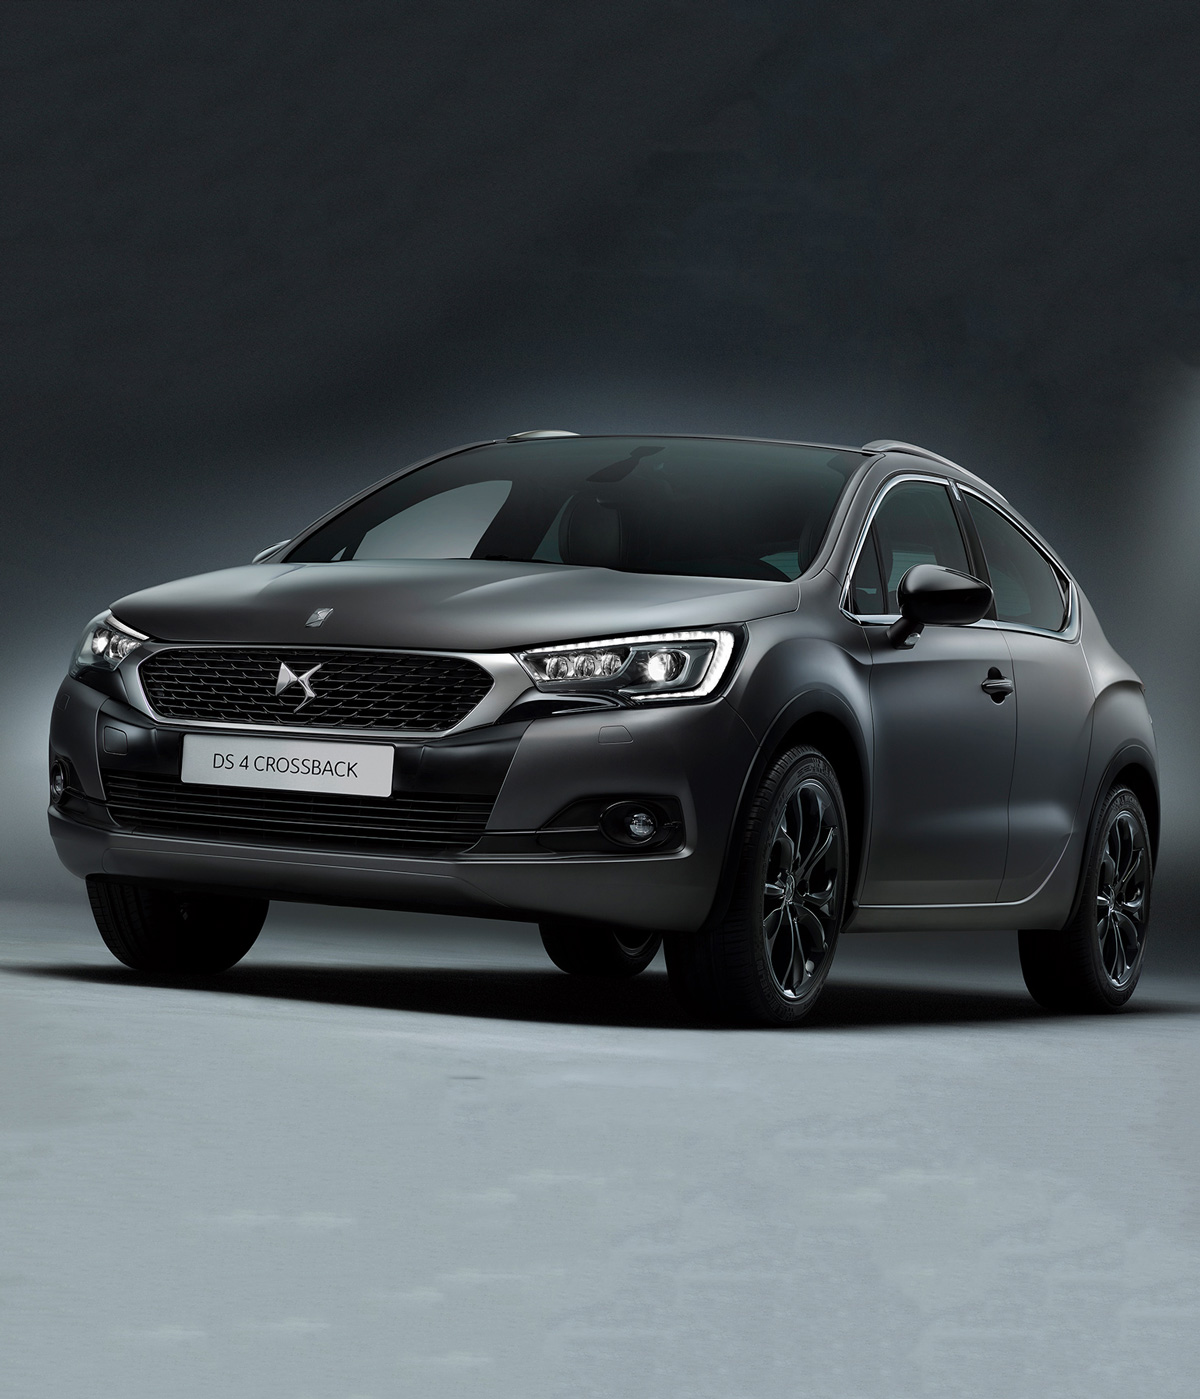 Introducing The DS4 Crossback Moondust